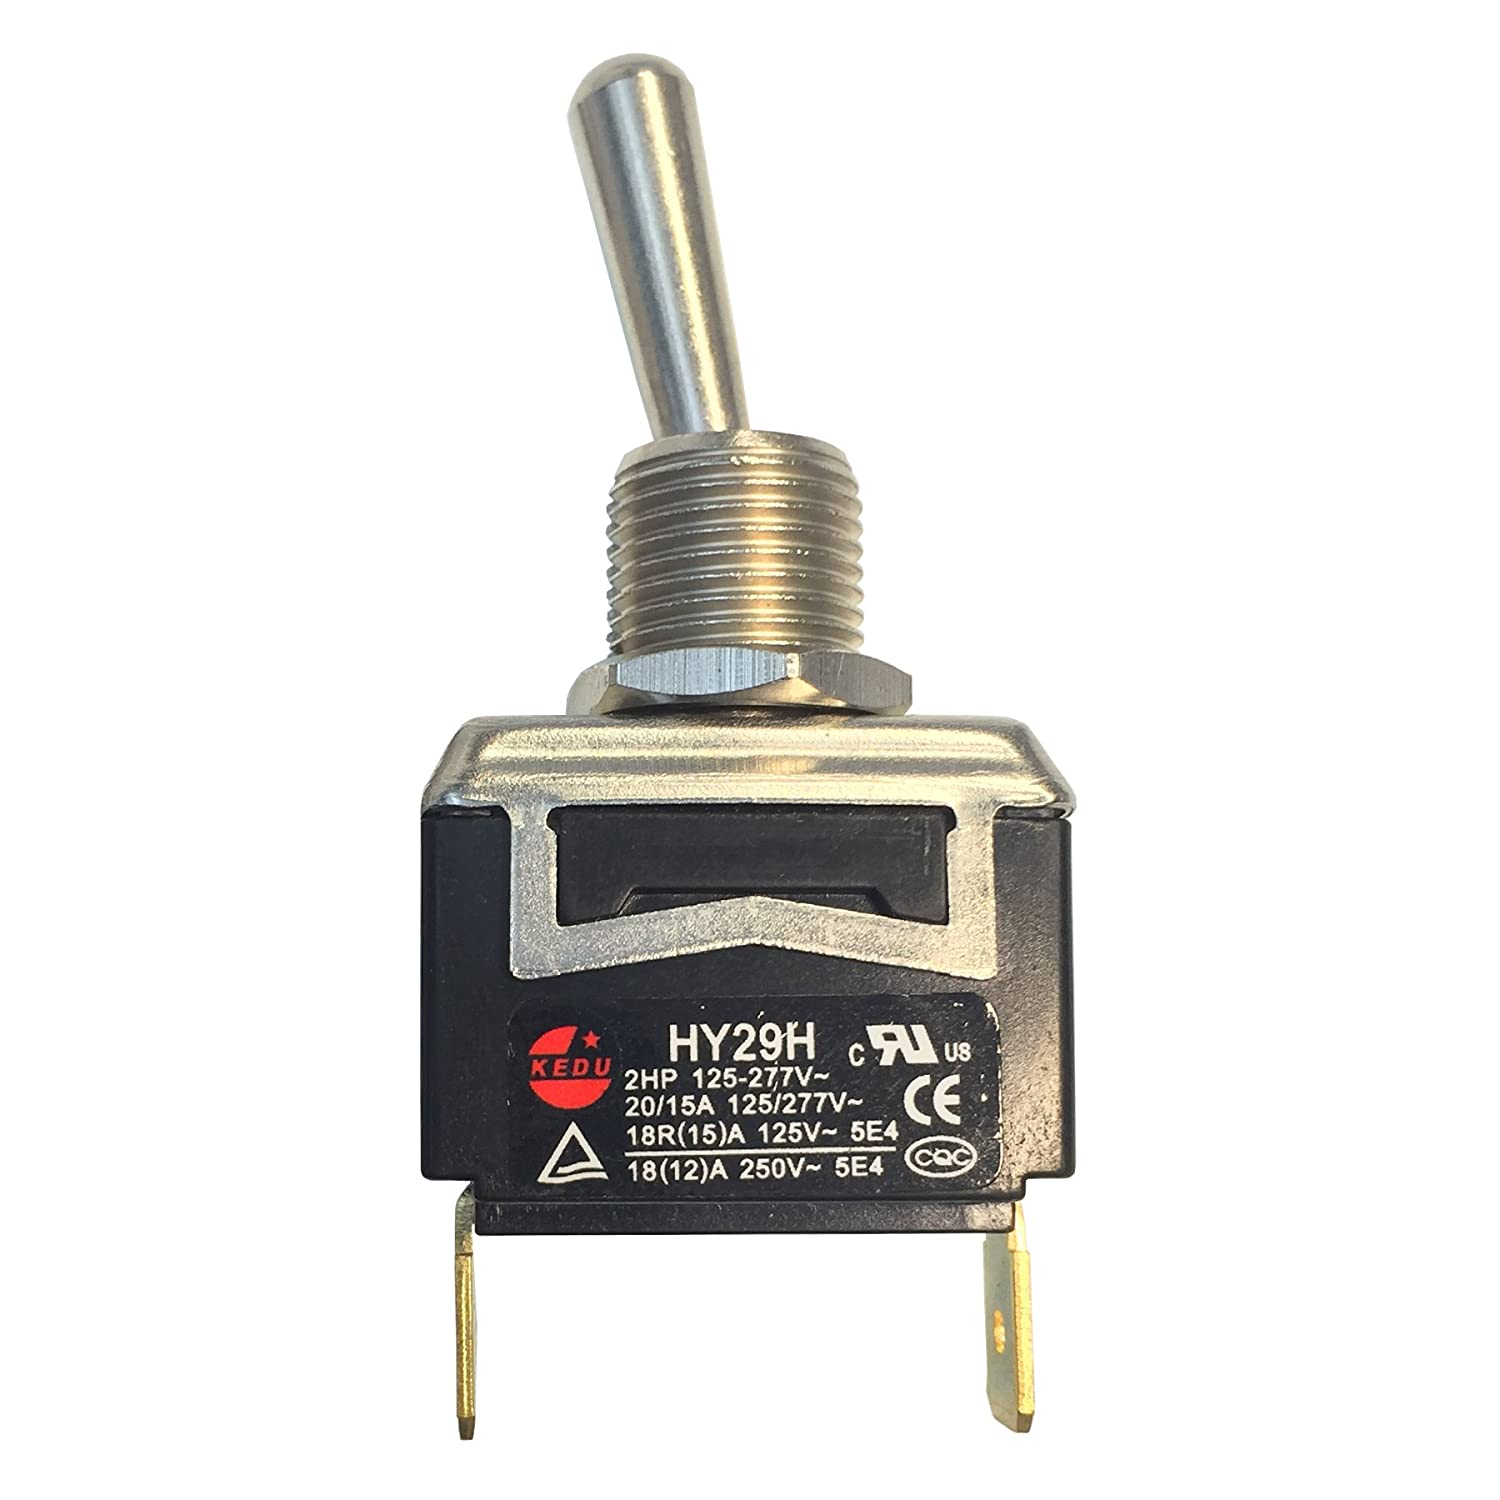 71iZJrfKZsL._SL1500_ gardner bender gsw 14 toggle switch, dpst, on off automotive Toggle Switch E170607 at mifinder.co